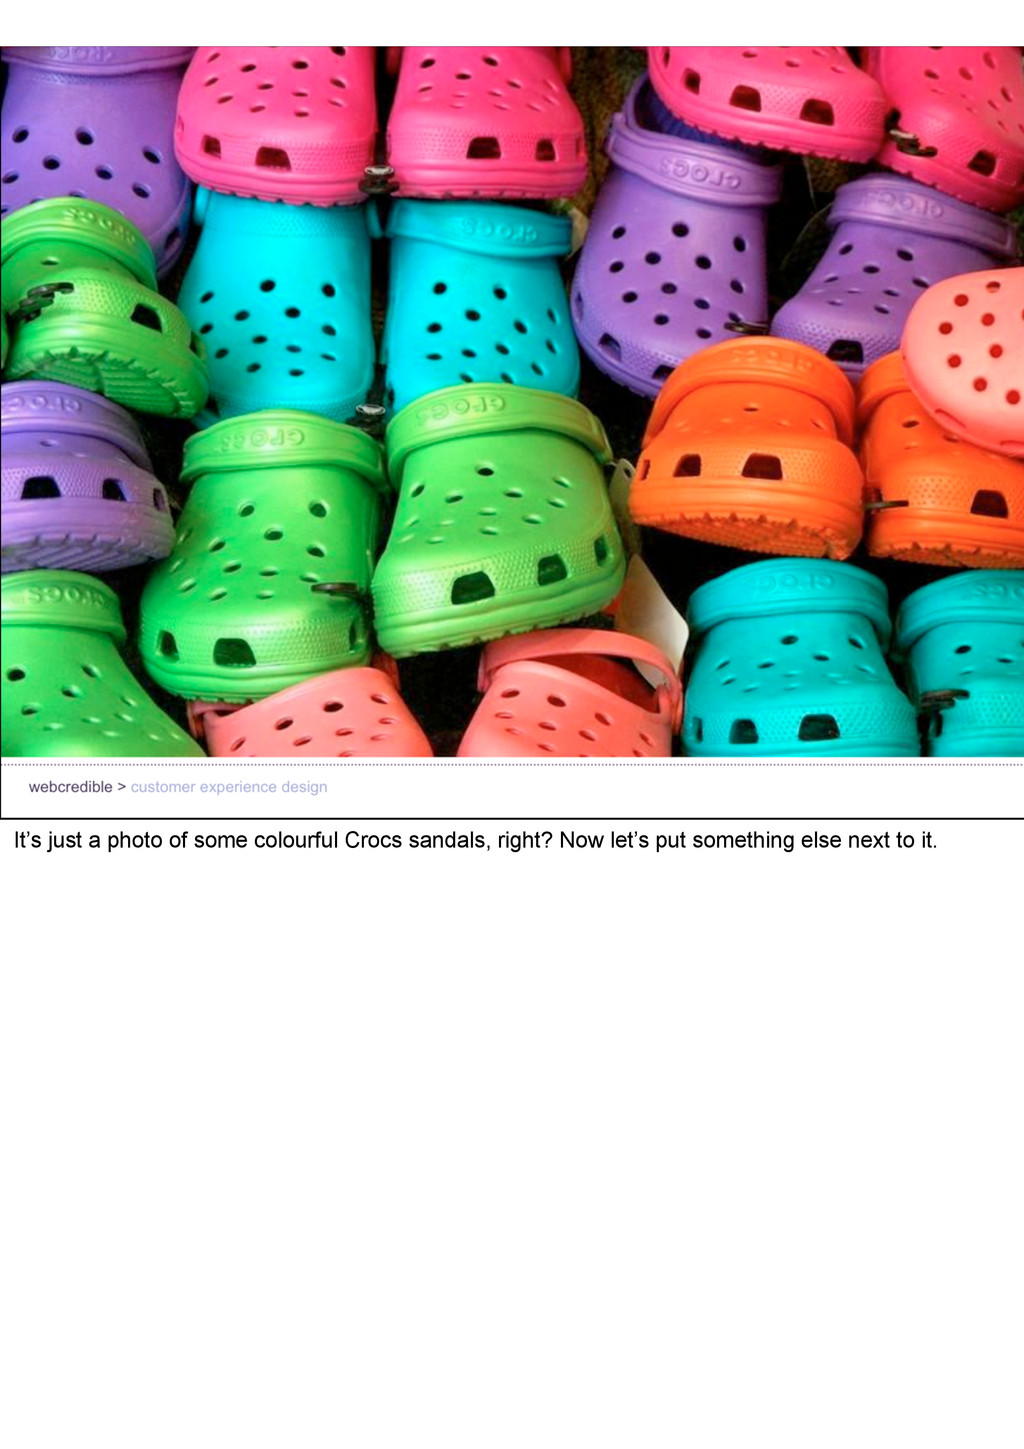 It's just a photo of some colourful Crocs sanda...